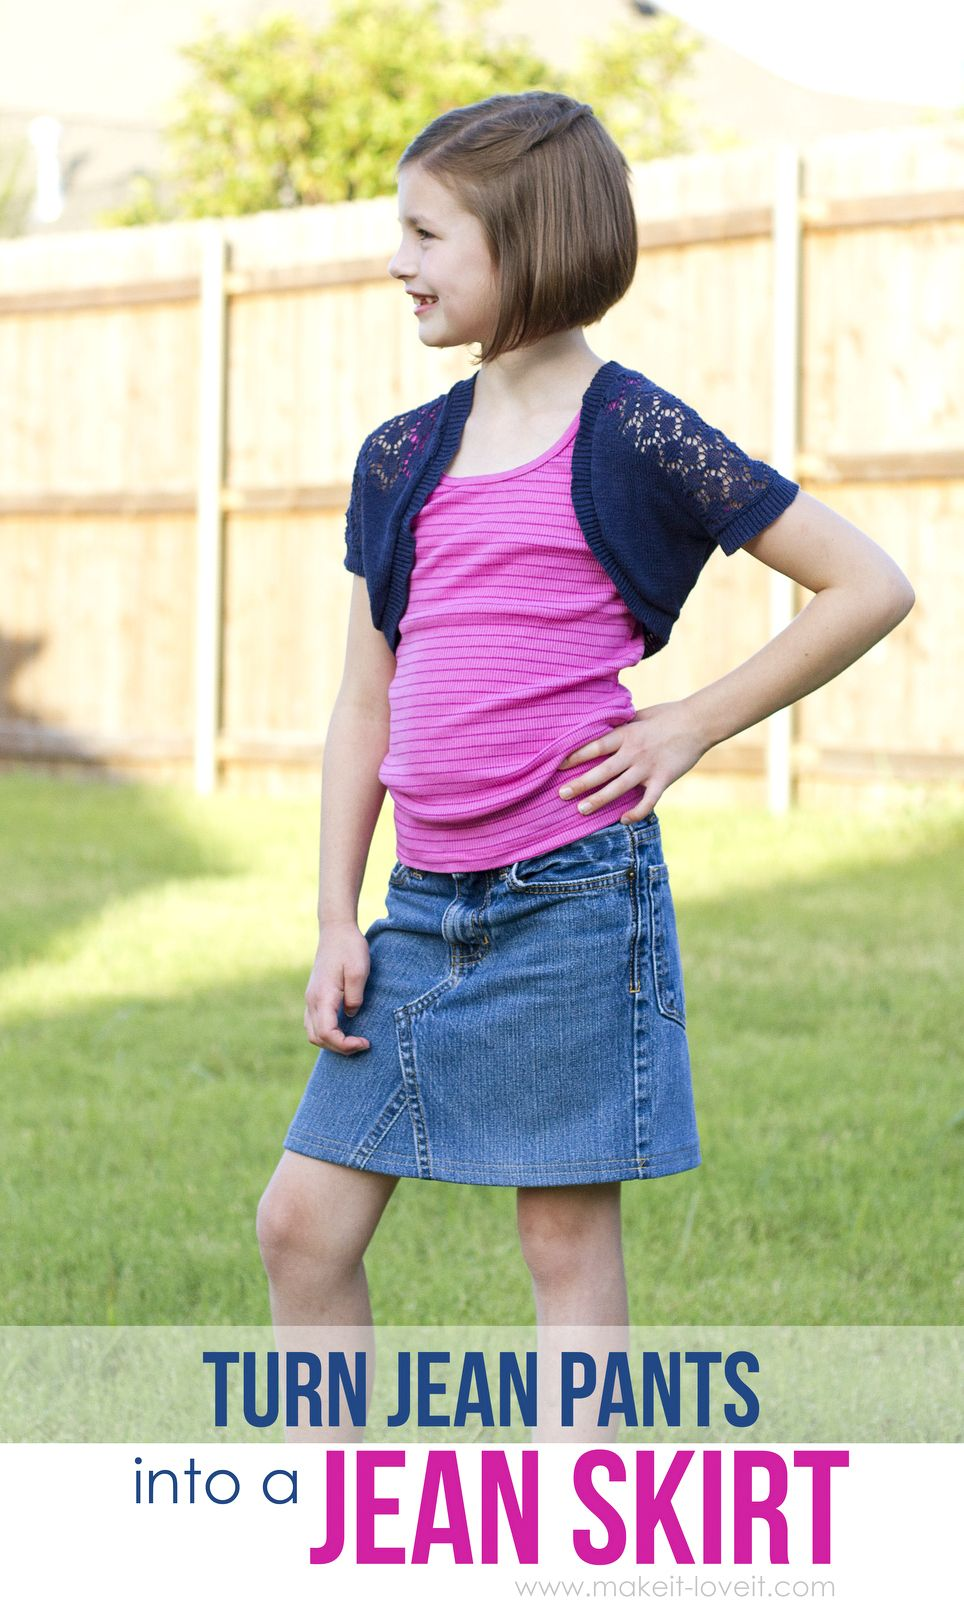 Turns Jeans into Skirts: How to Make DIY Skirts Out of ...